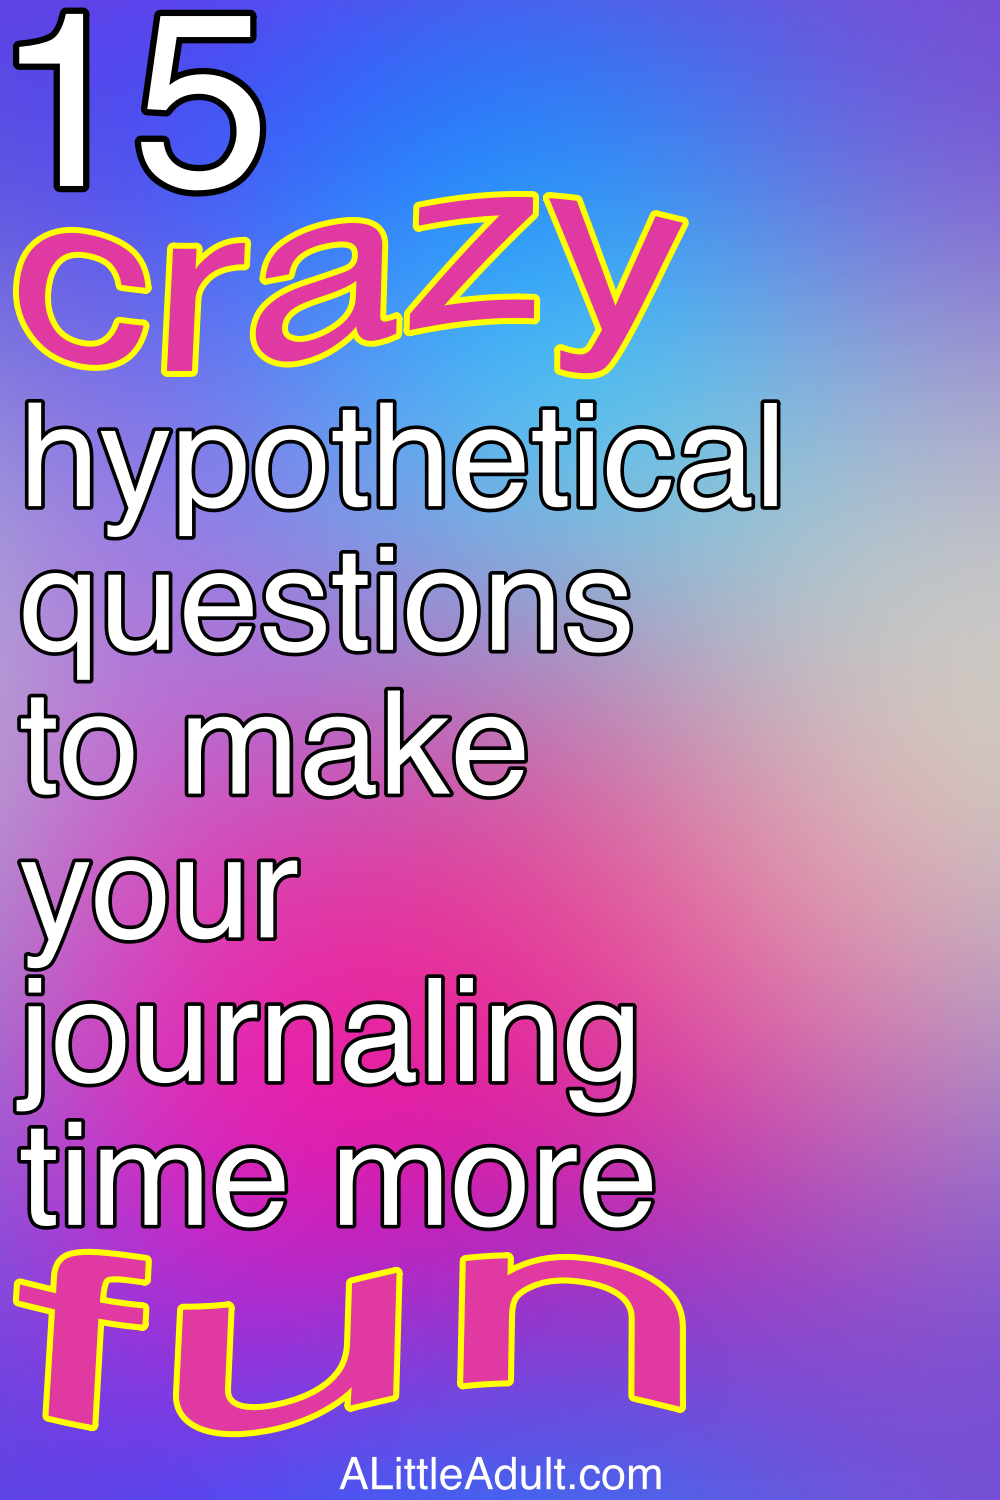 15 crazy hypothetical questions to make your journaling time more fun